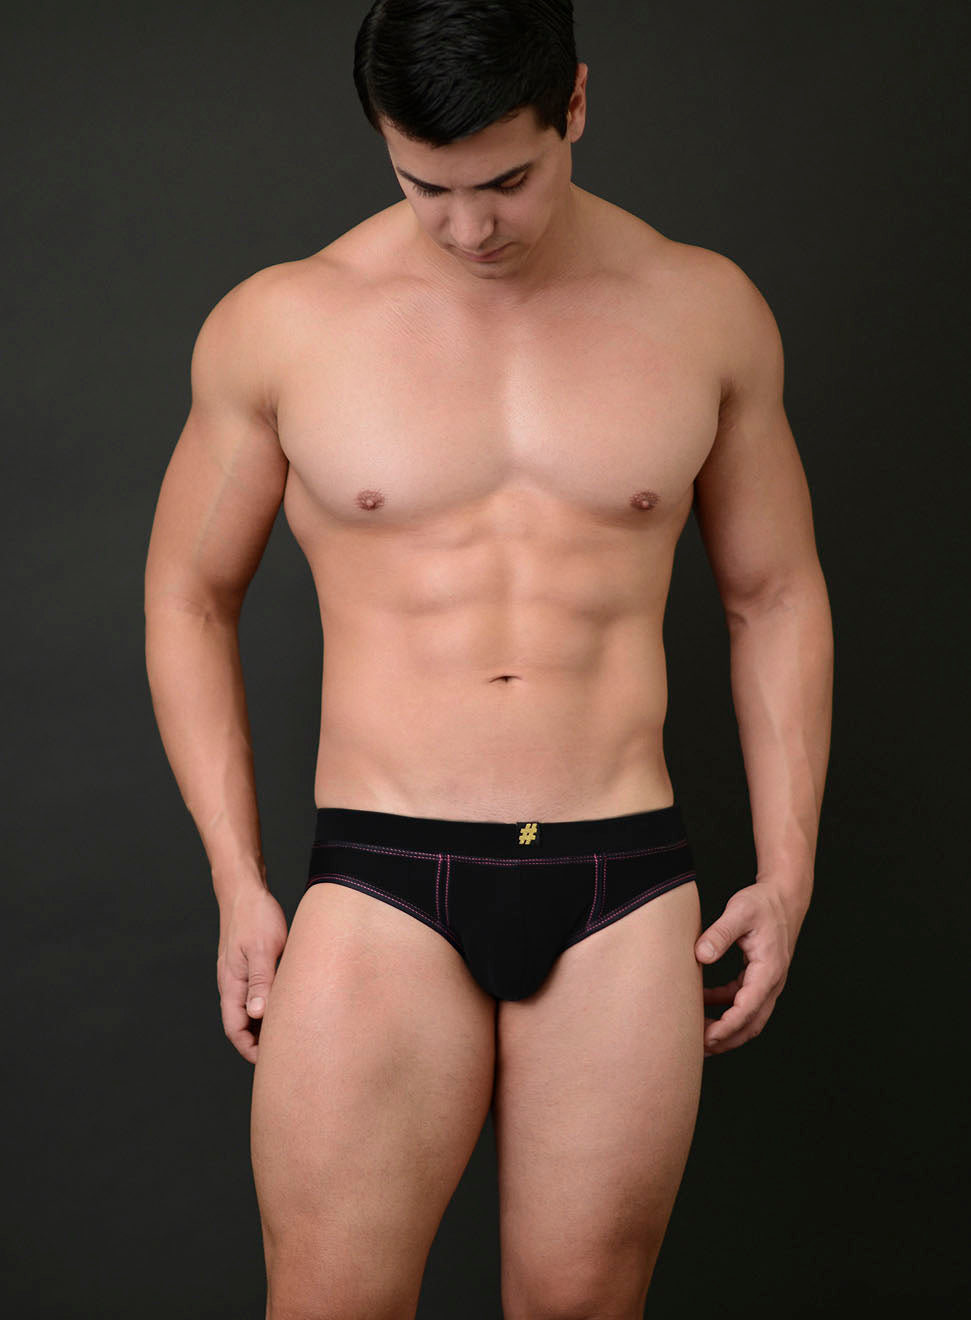 BILLY SWIM RACER WITH CRYSTAL LOGO - PRIDE LIMITED EDITION